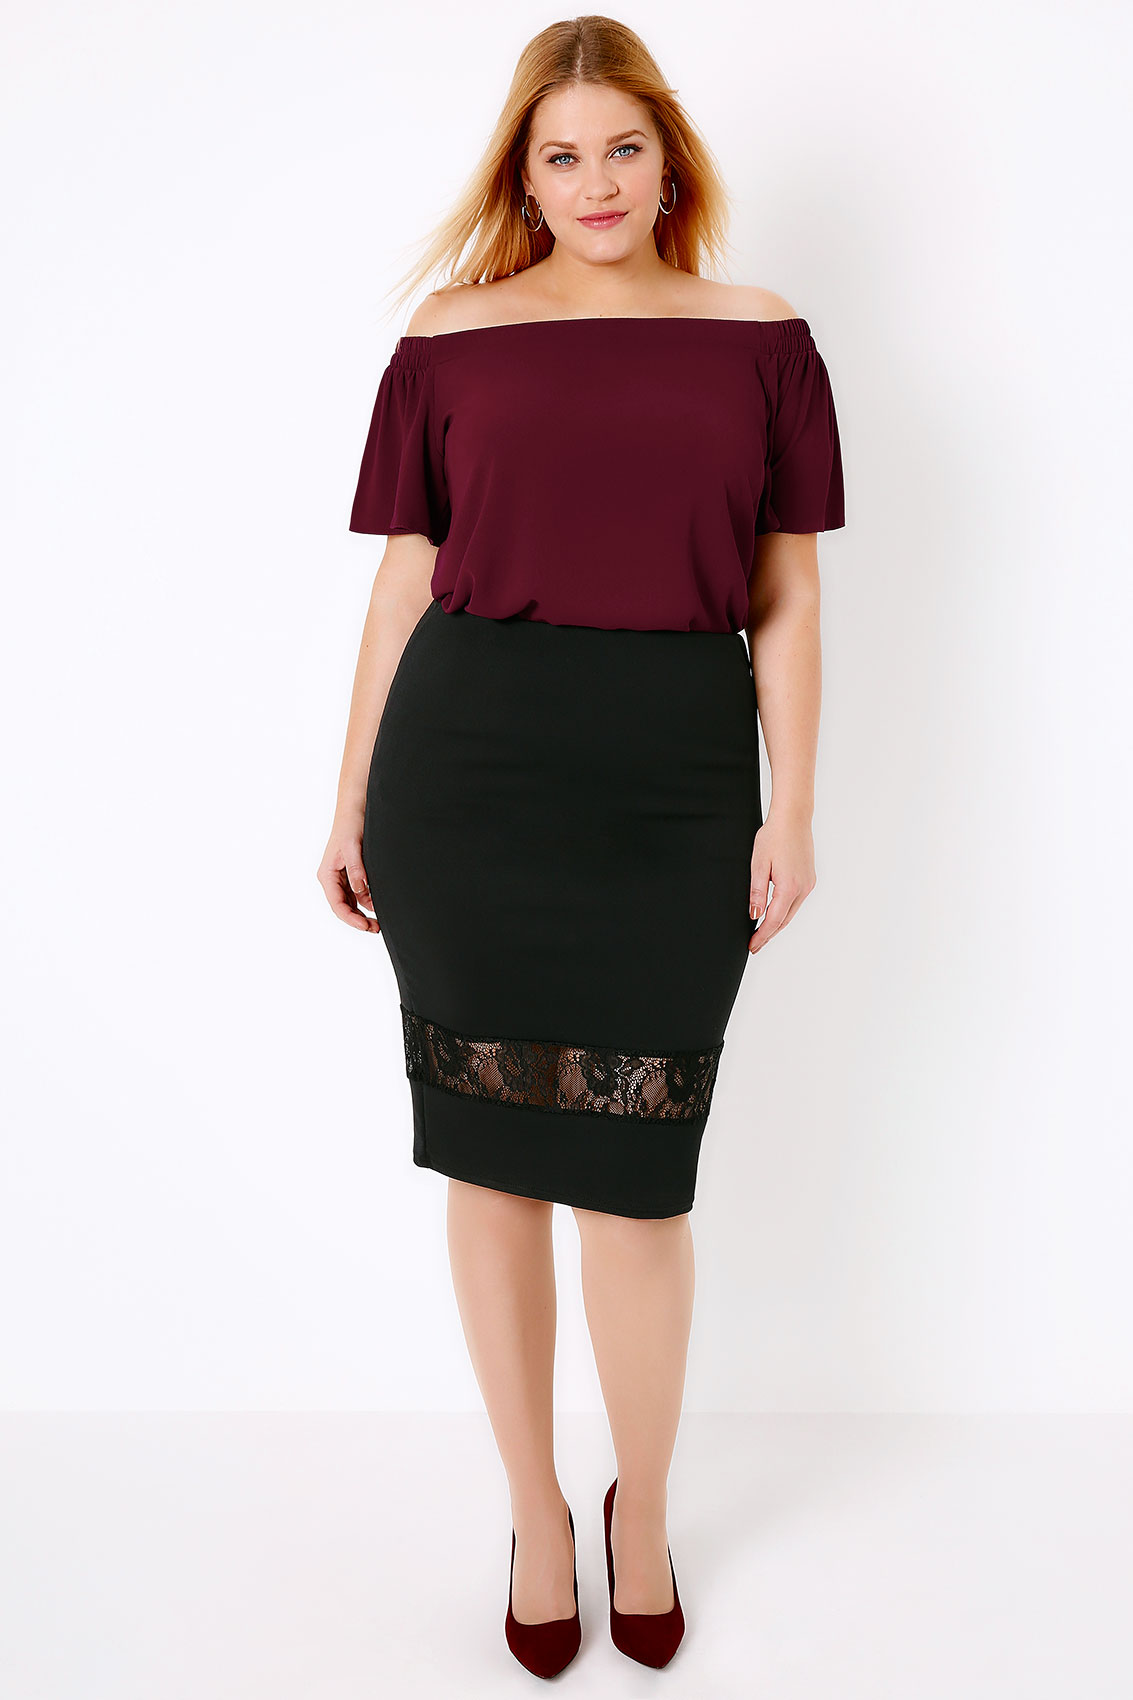 Discover the latest skirts and trends with Missguided. From maxi skirts to midi, mini and skater skirts. Black Skirts: Red Skirts: White Skirts: Faux Suede Skirts: Casual Skirts: Formal Skirts: Maxi Skirts: A Line Skirts: SALE SKIRTS: Plus Size Red Leopard Print Denim Skirt $